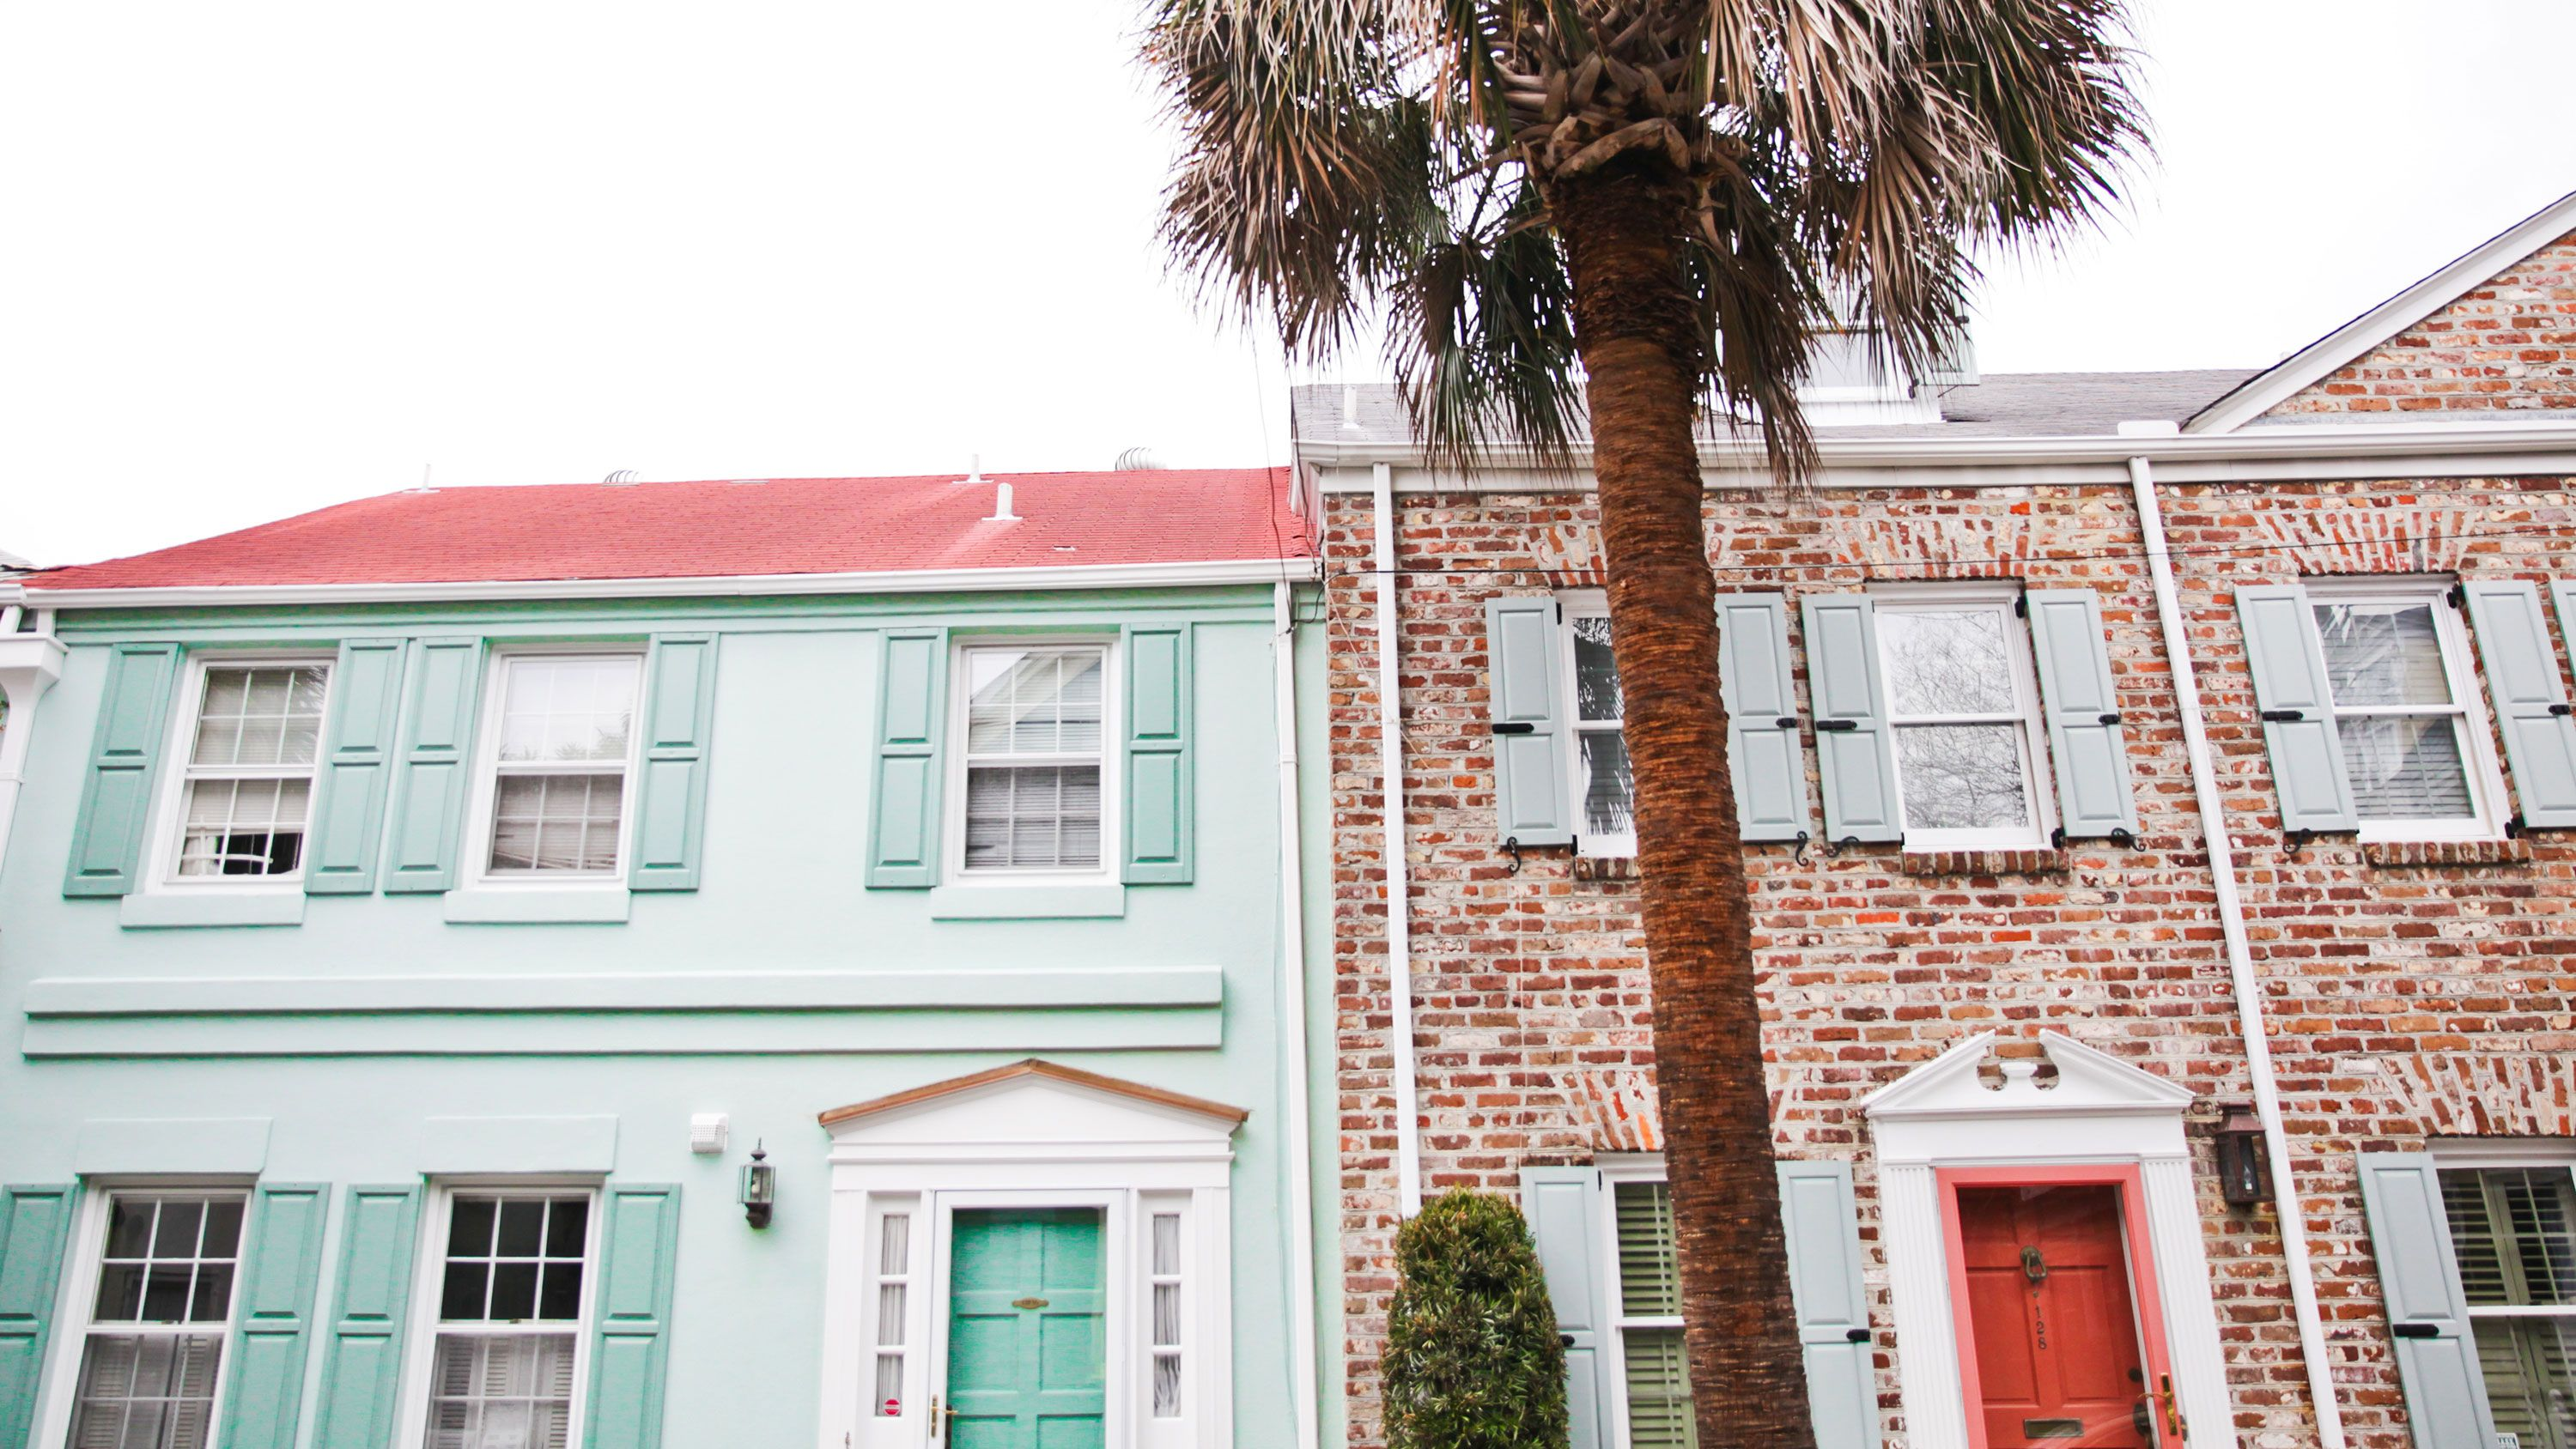 Charleston - The sort of typical architectural charm you won't stop delighting in.